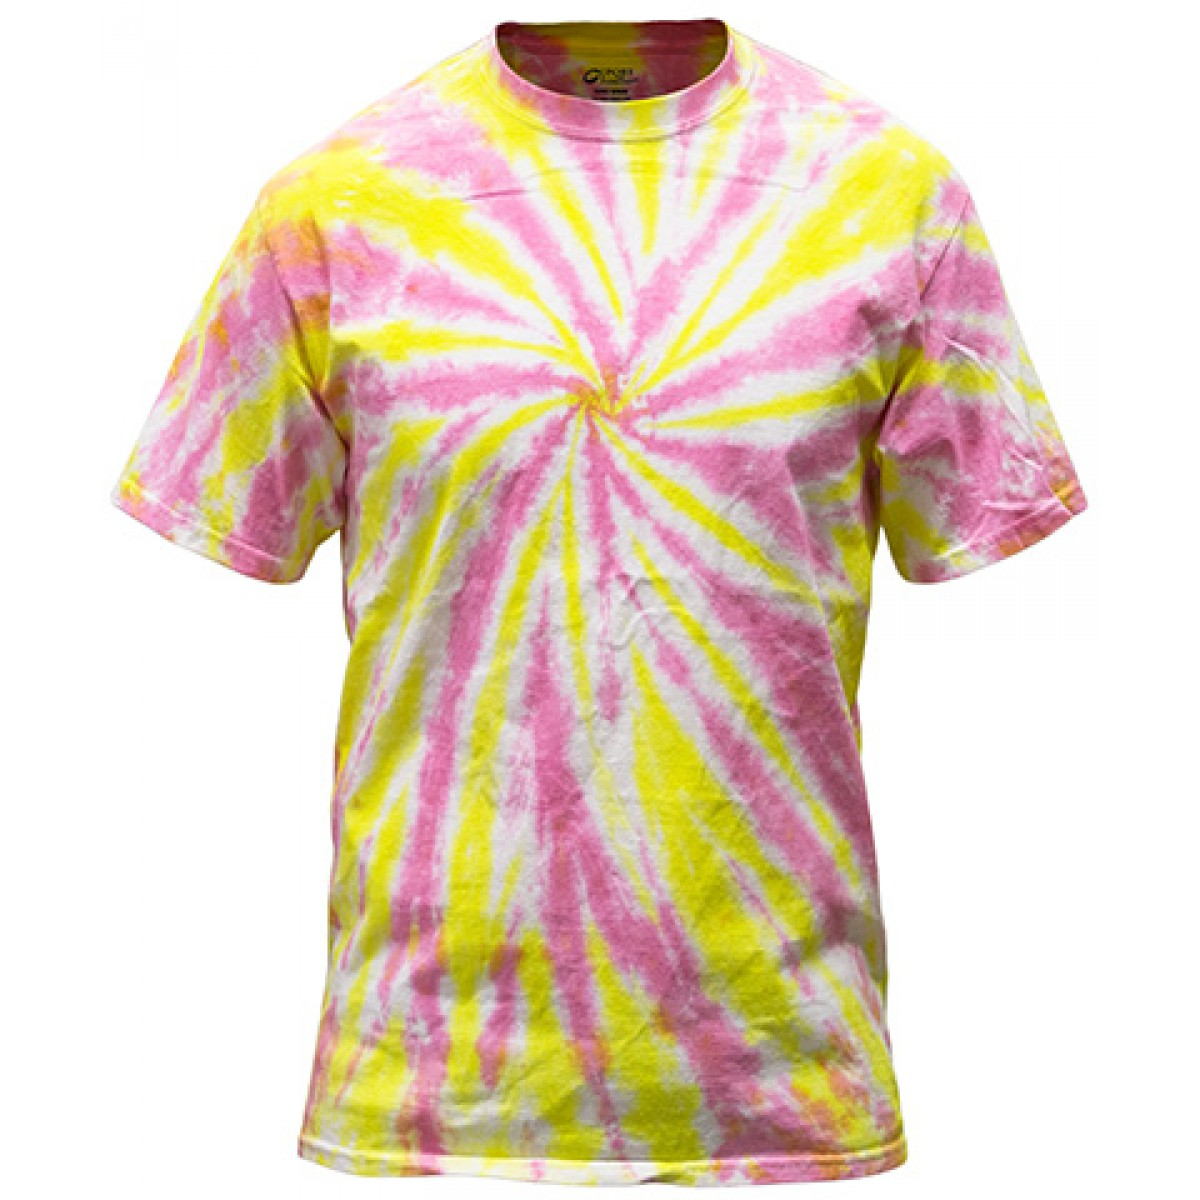 Multi-Color Tie-Dye Tee -Pink/Yellow-2XL